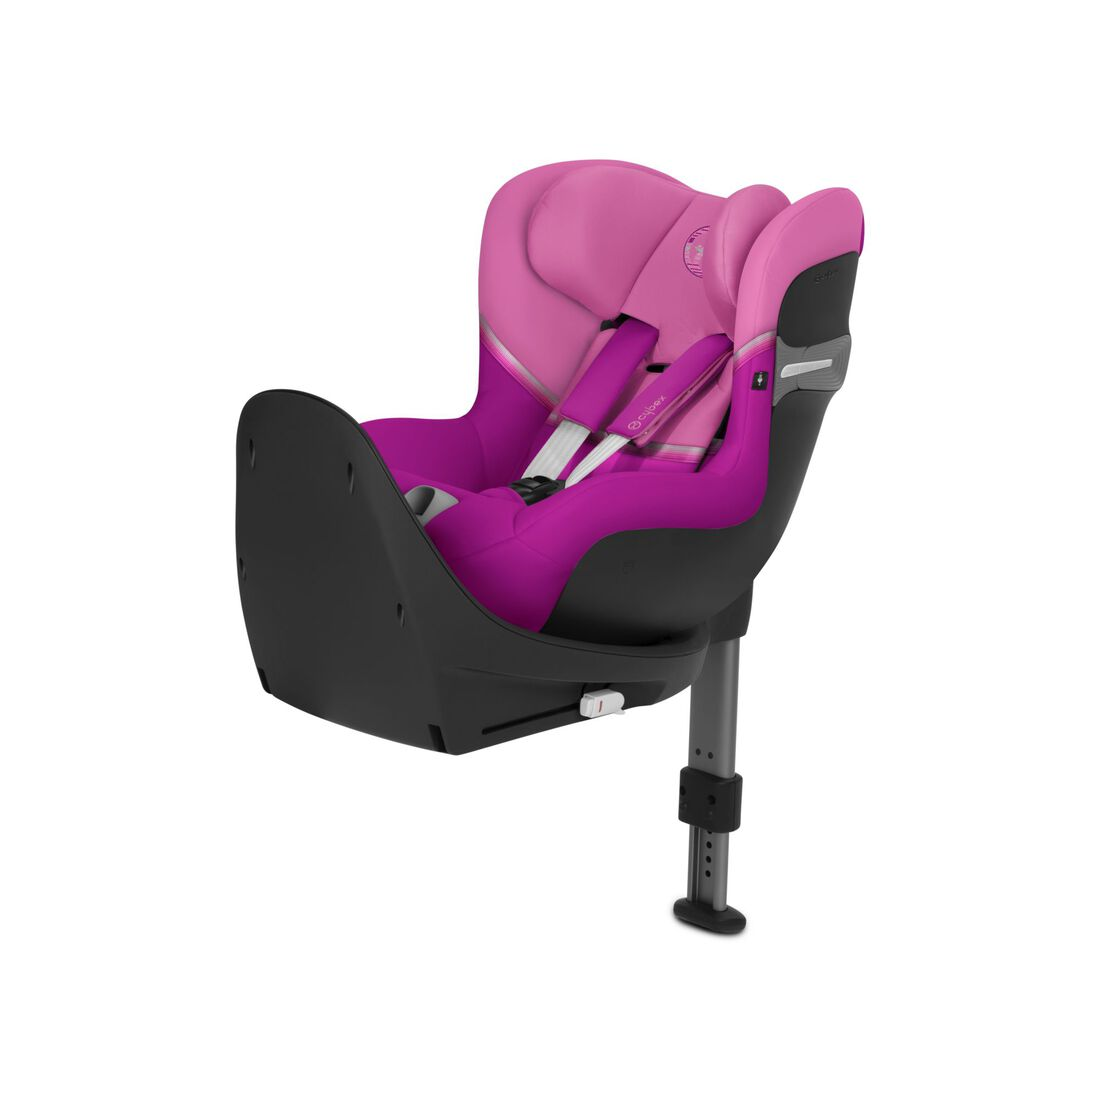 CYBEX Sirona S i-Size - Magnolia Pink in Magnolia Pink large image number 1